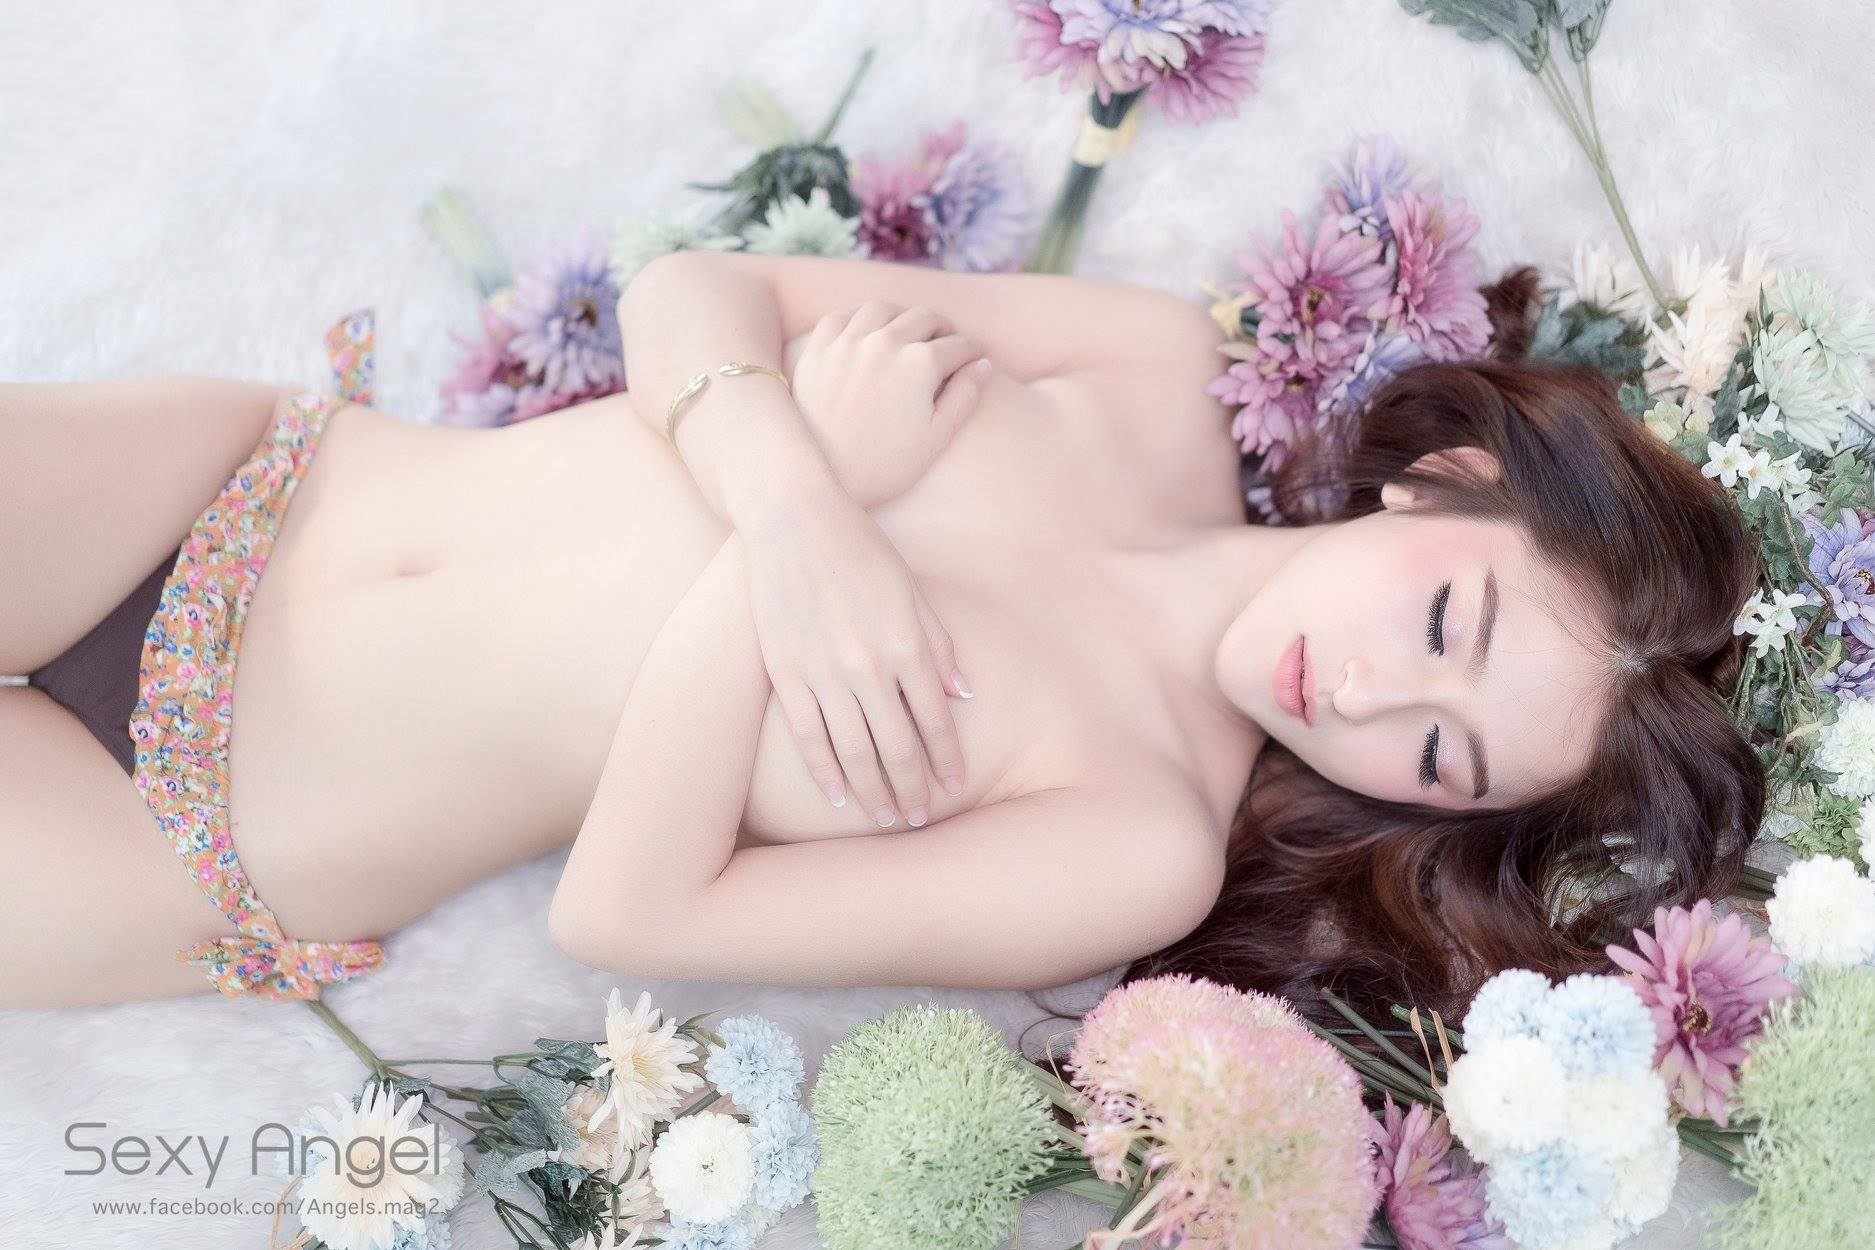 cool Asian girl in sexy pose